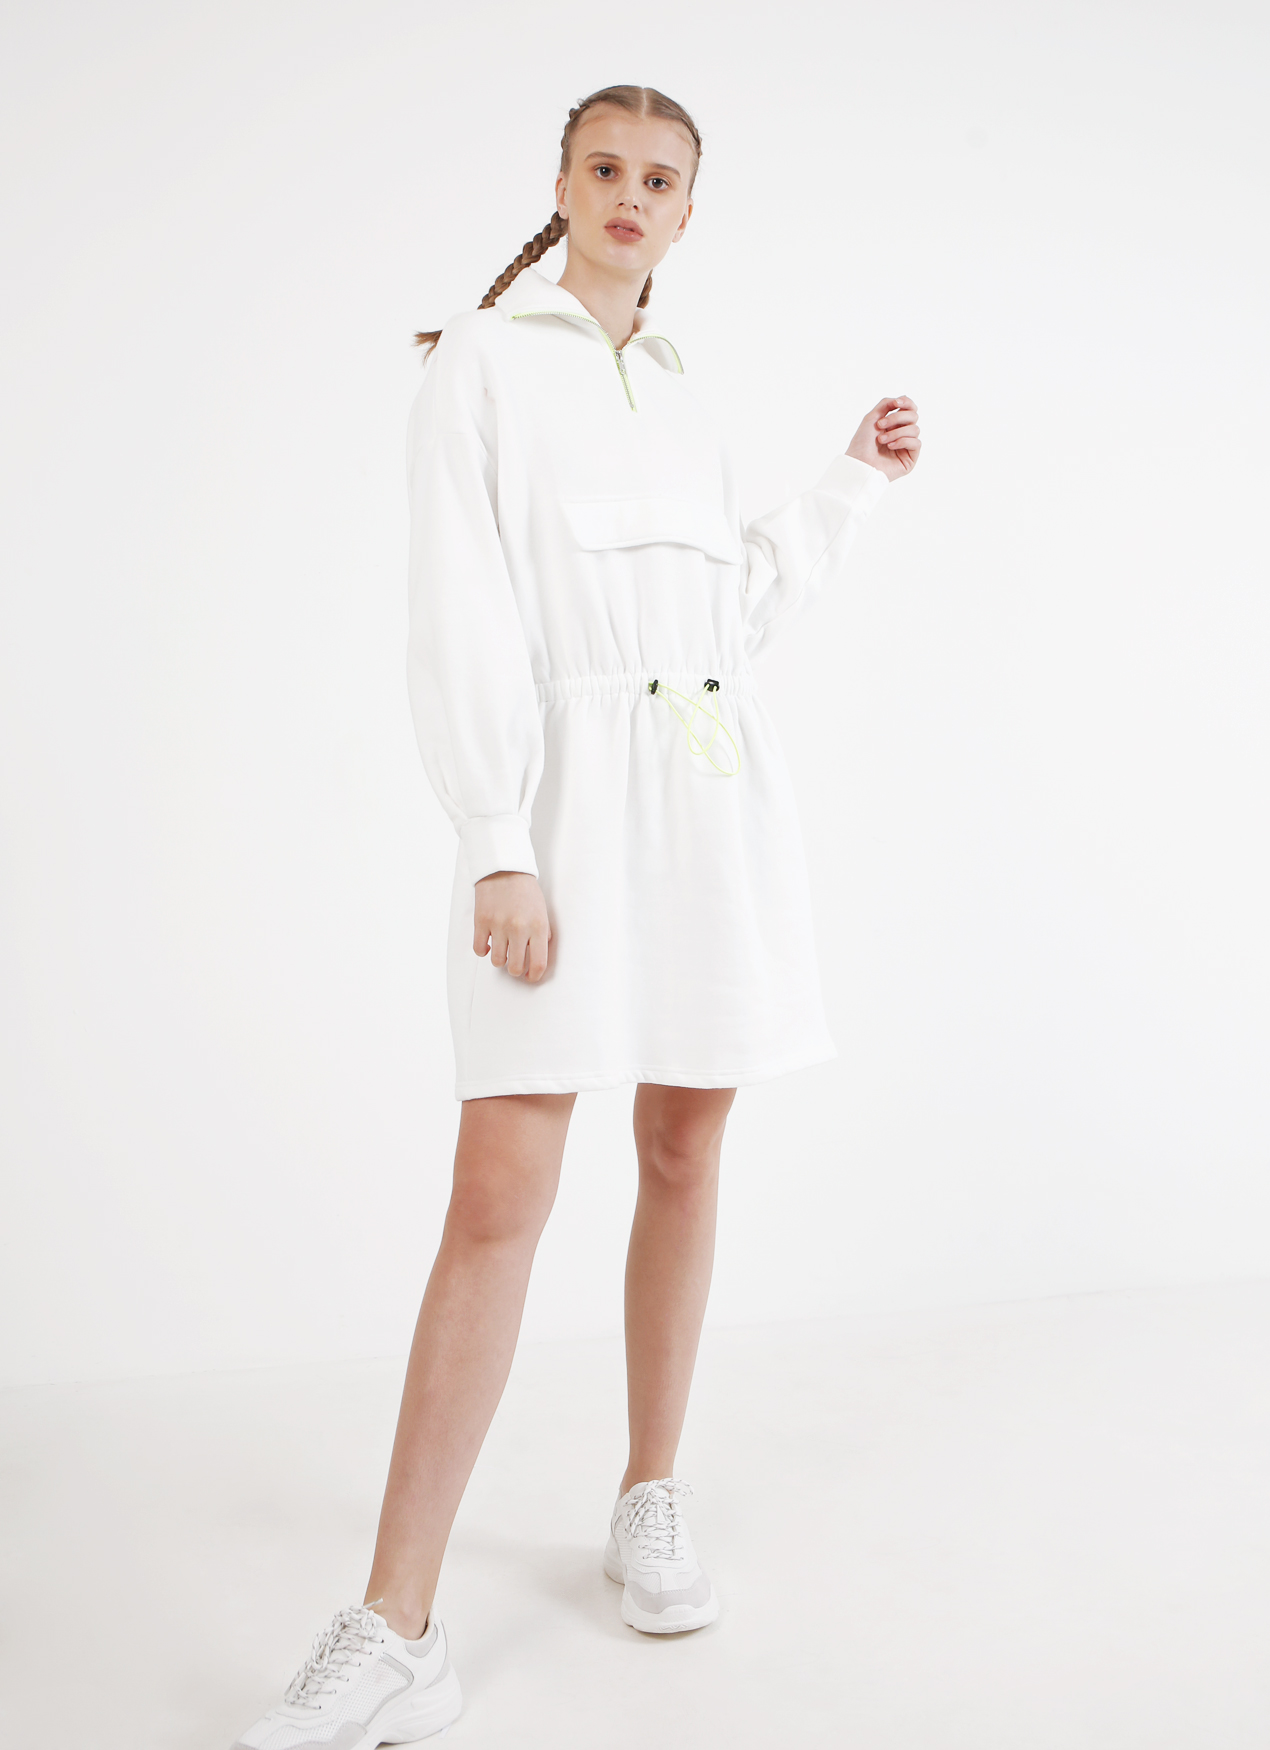 BOWN Alicia Dress - White